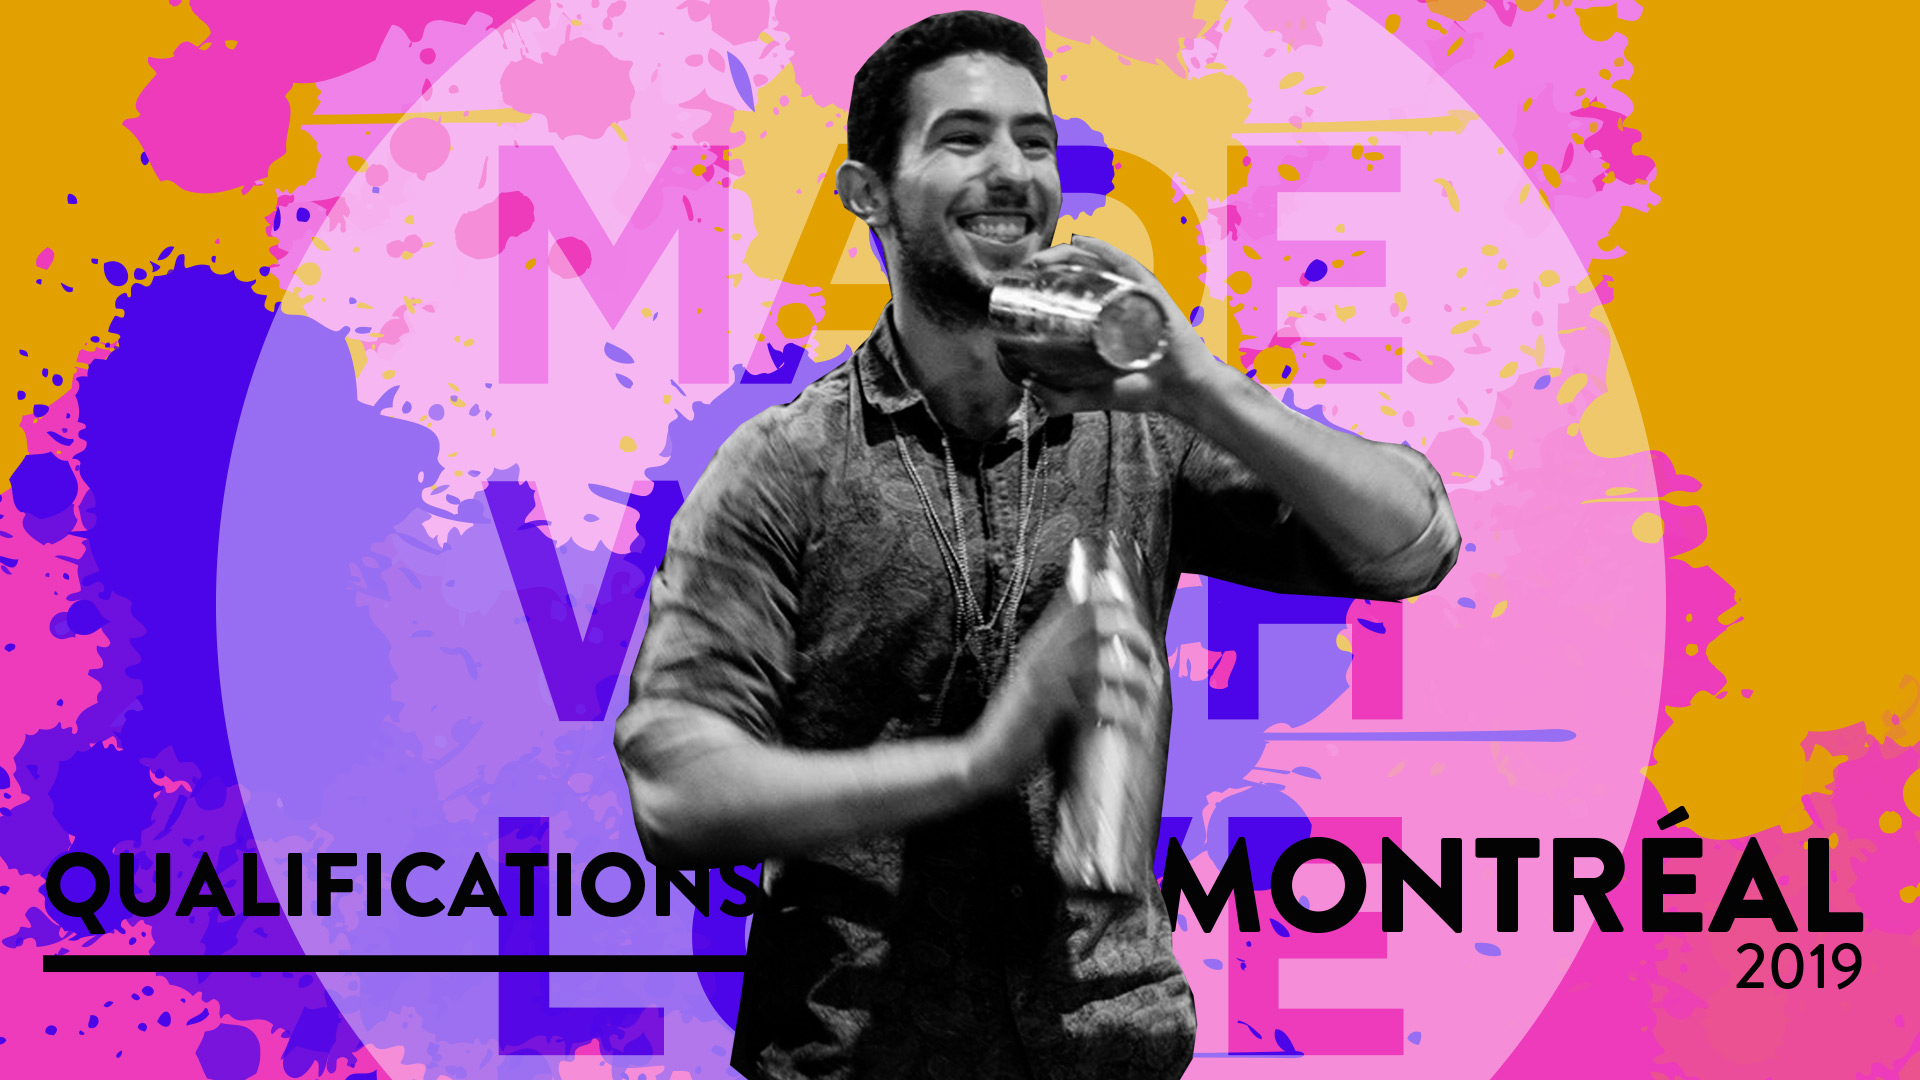 fb-event-cover-montreal